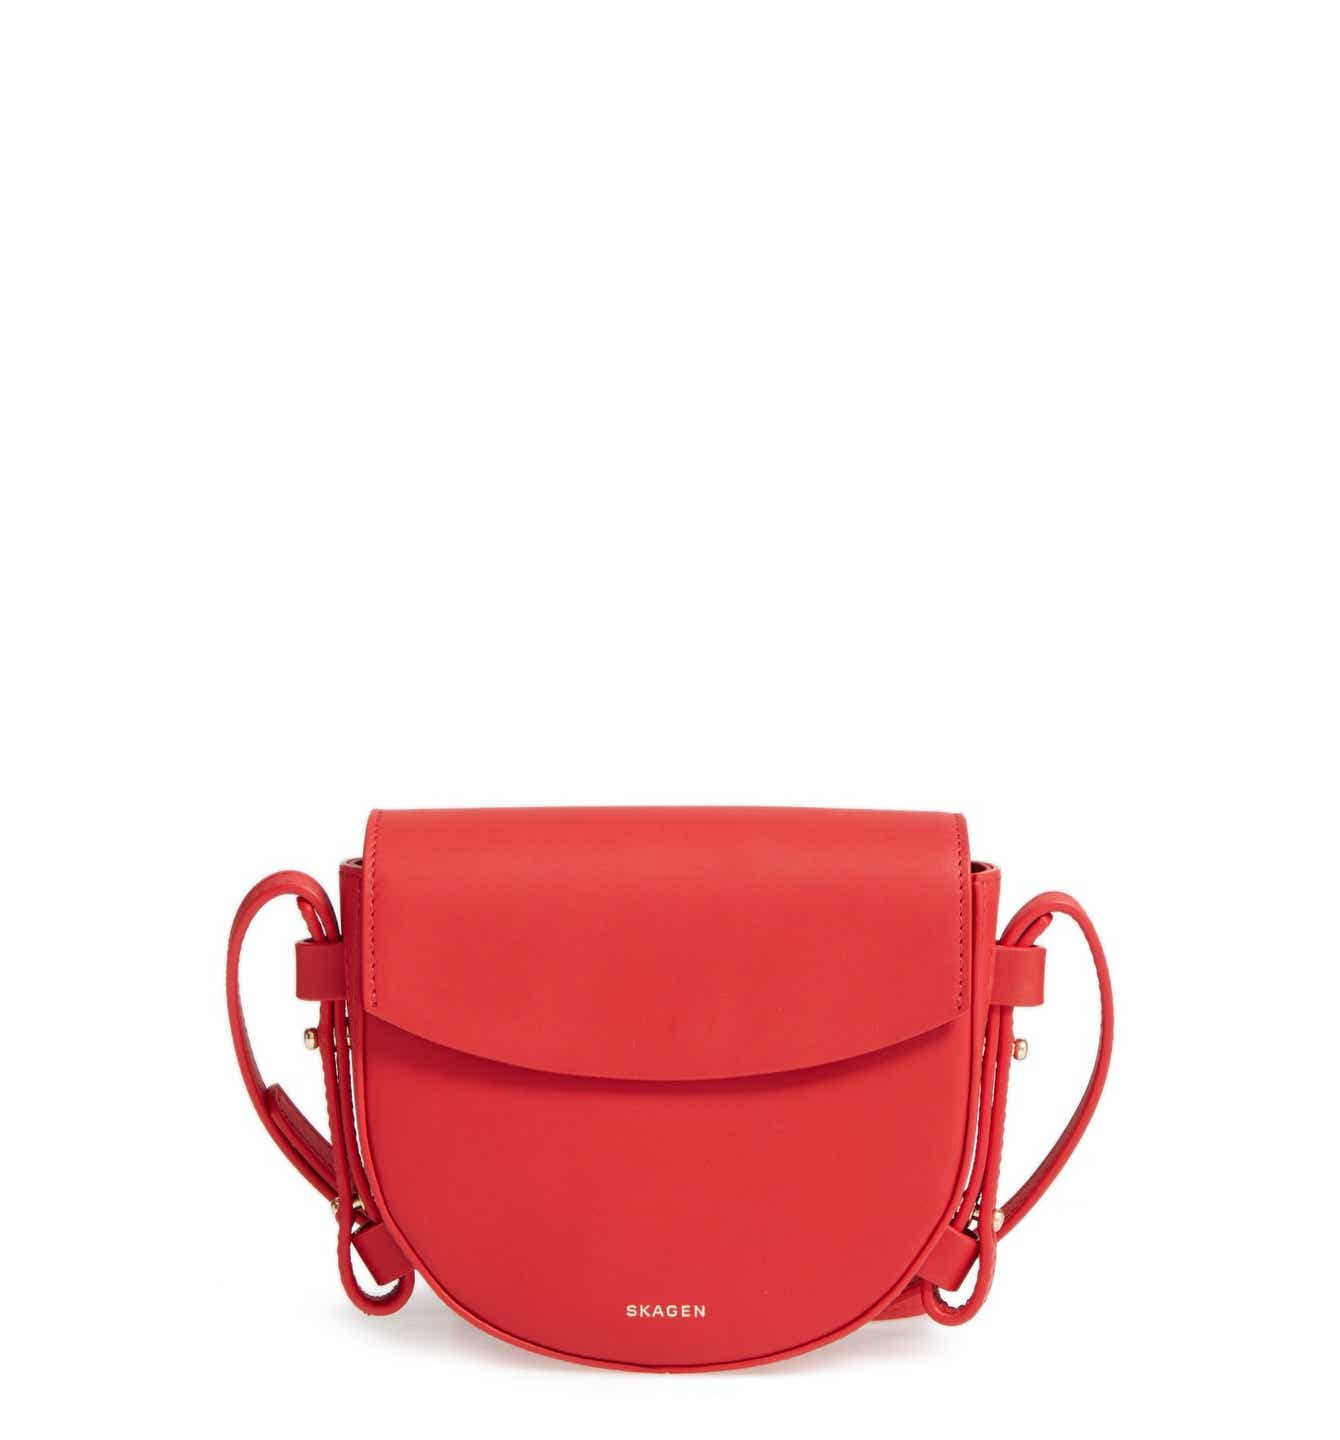 a9a050b2db37 Skagen is getting into the purse game. I like their saddle bags.